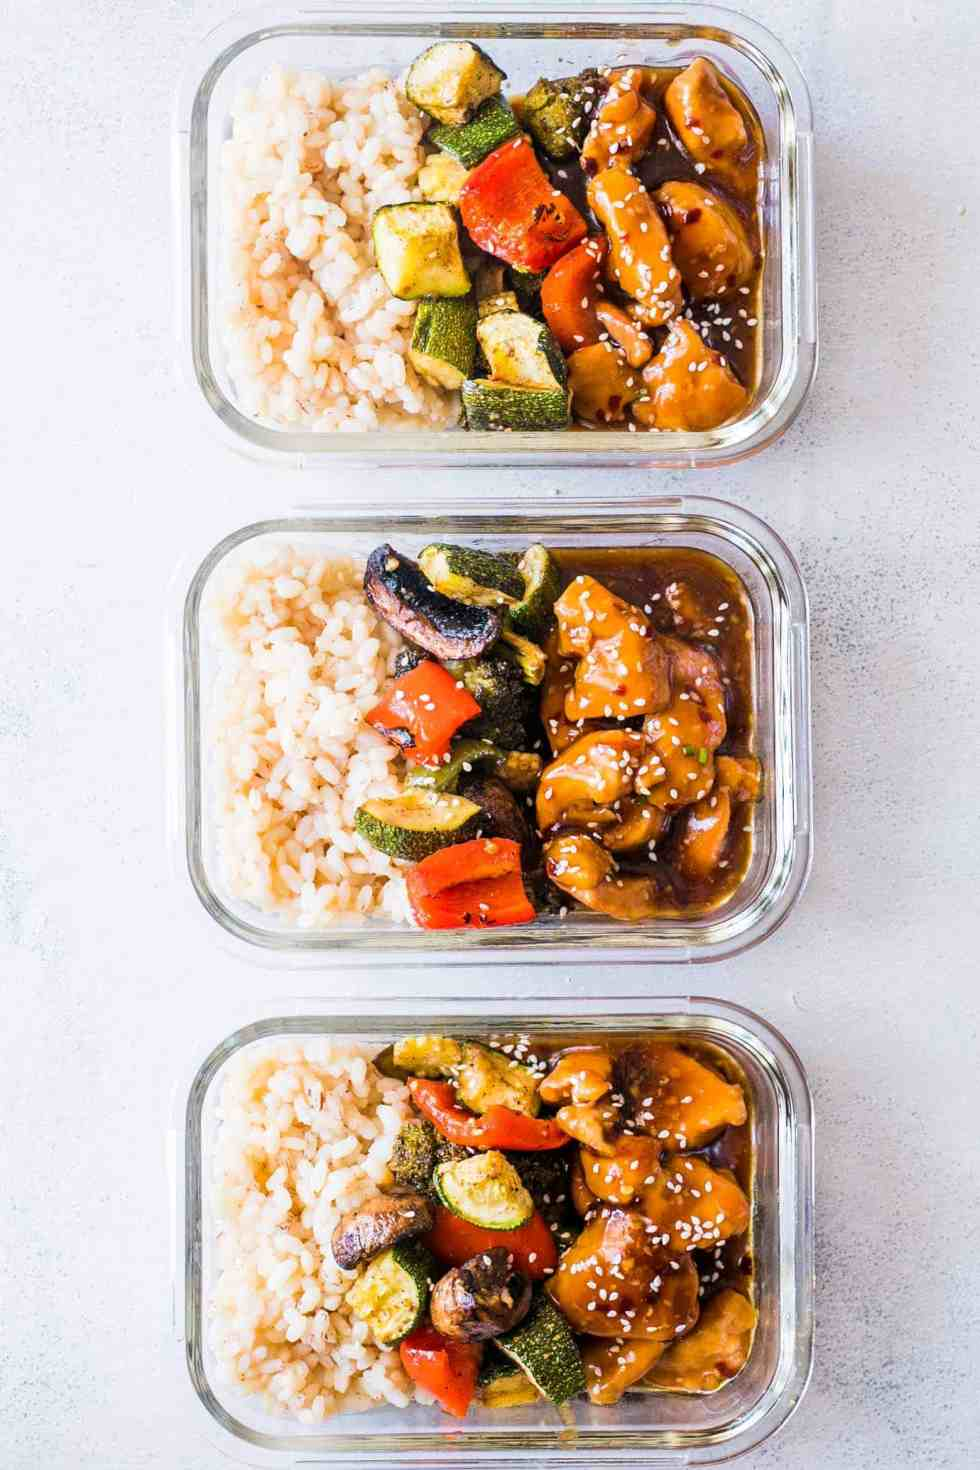 Tasty Teriyaki Chicken Stir-Fry Meal Prep Lunch Boxes are the easiest way to make sure you are ready for for the week ahead. Served with brown rice and grilled vegetables, it's a balanced meal!